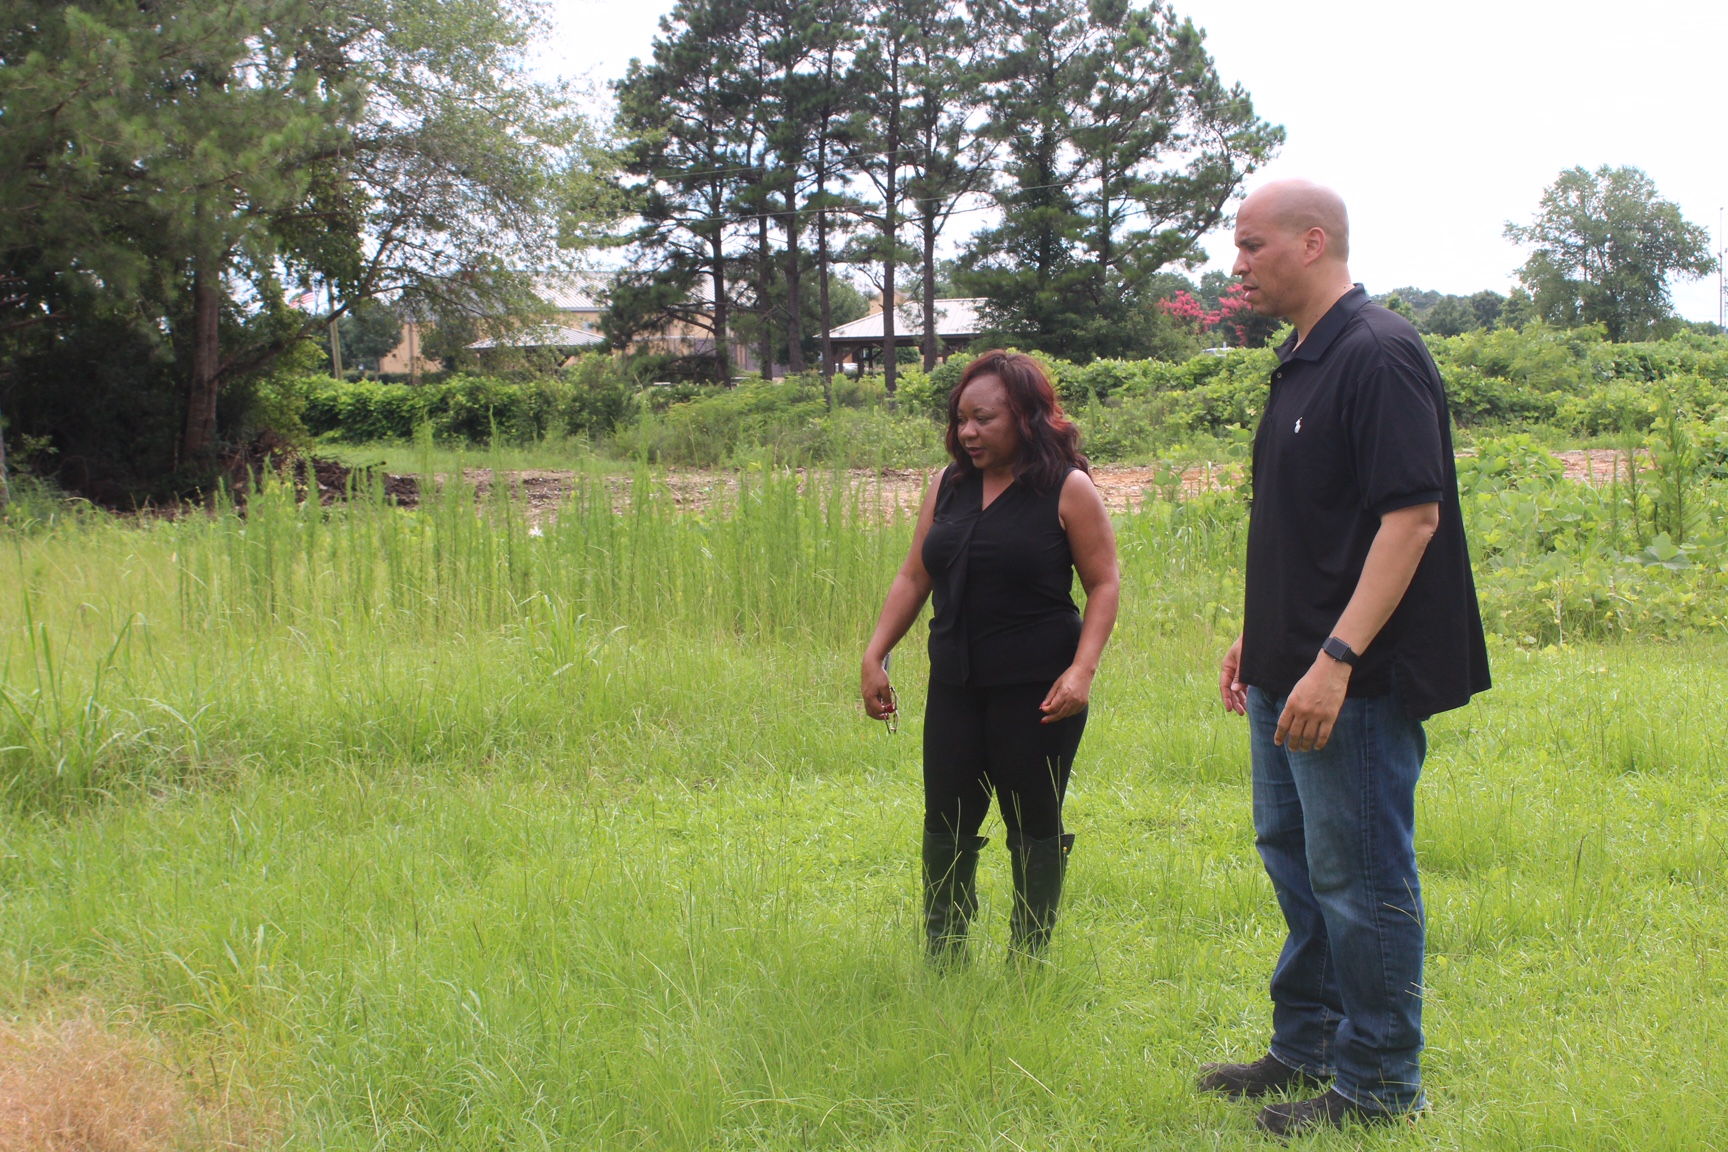 Catherine Flowers guides Senator Cory Booker through Lowndes County, Alabama, as part of his 2017 environmental justice tour.